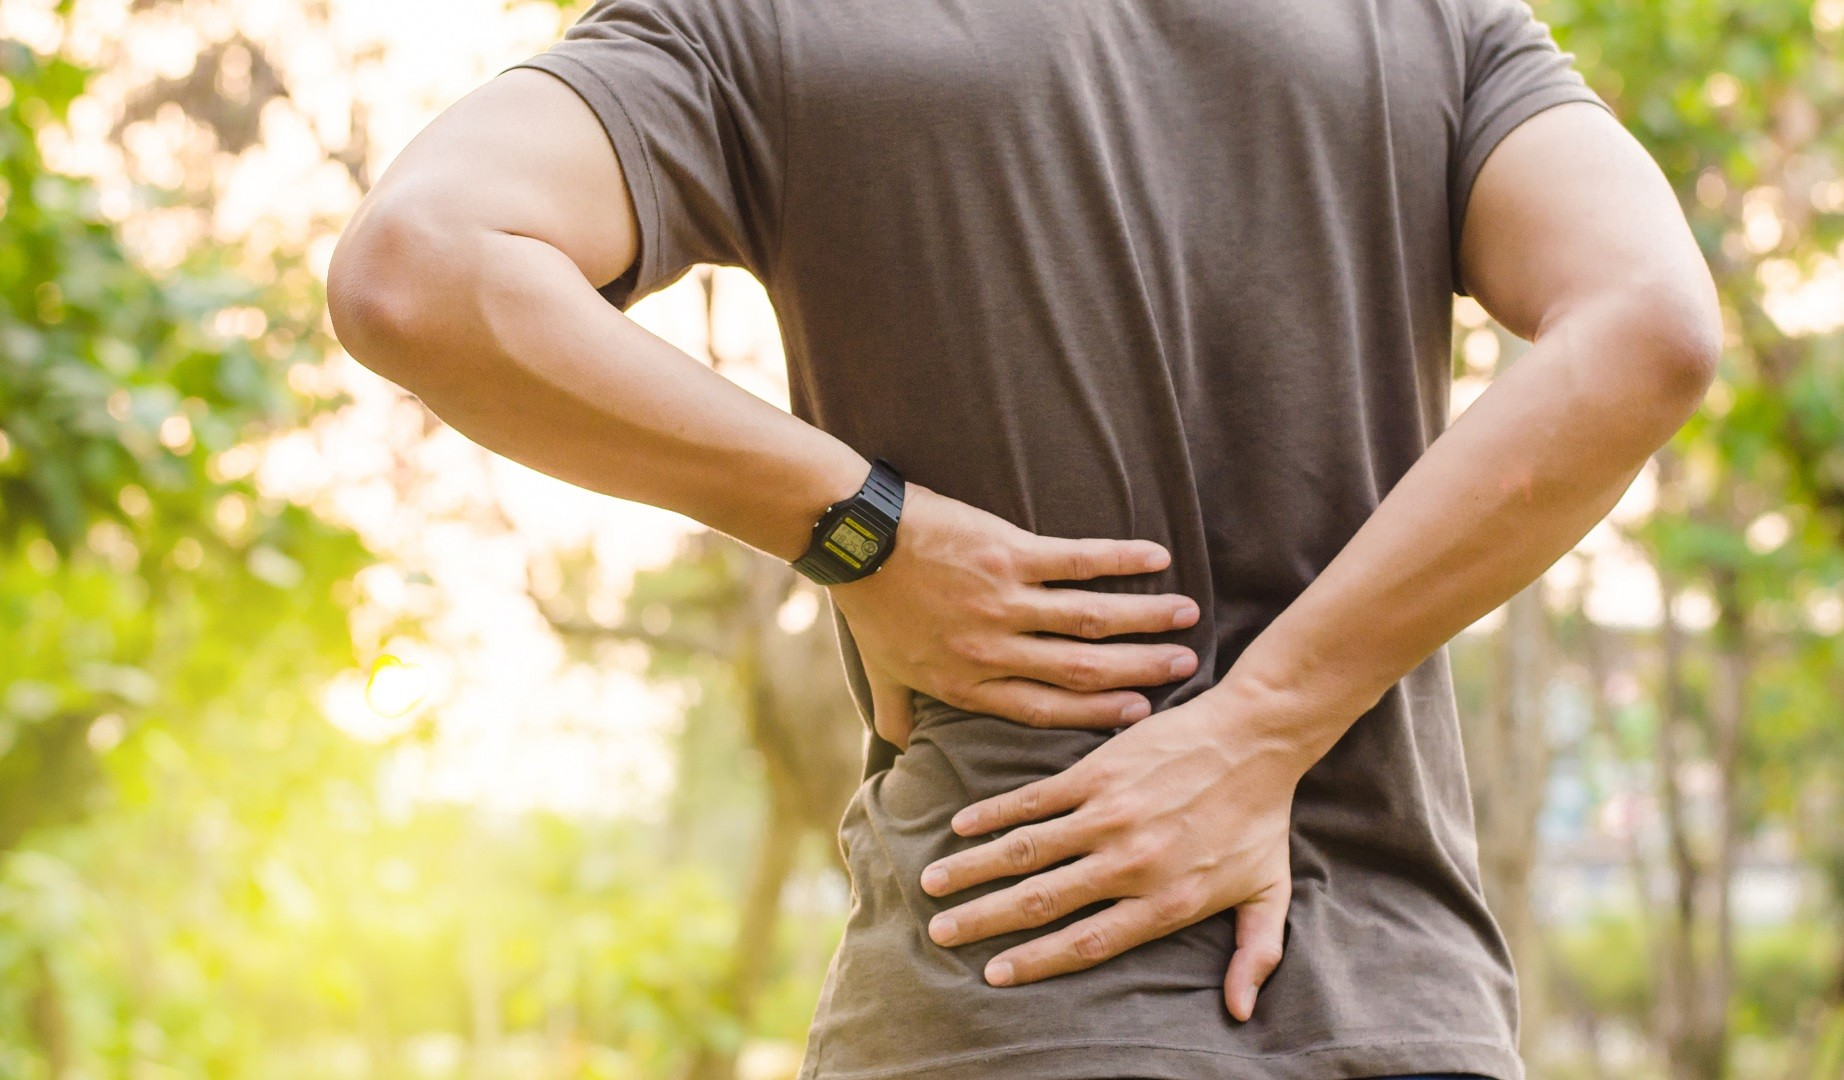 Research Shows Acupressure Beats Physical Therapy in Treating Low Back Pain